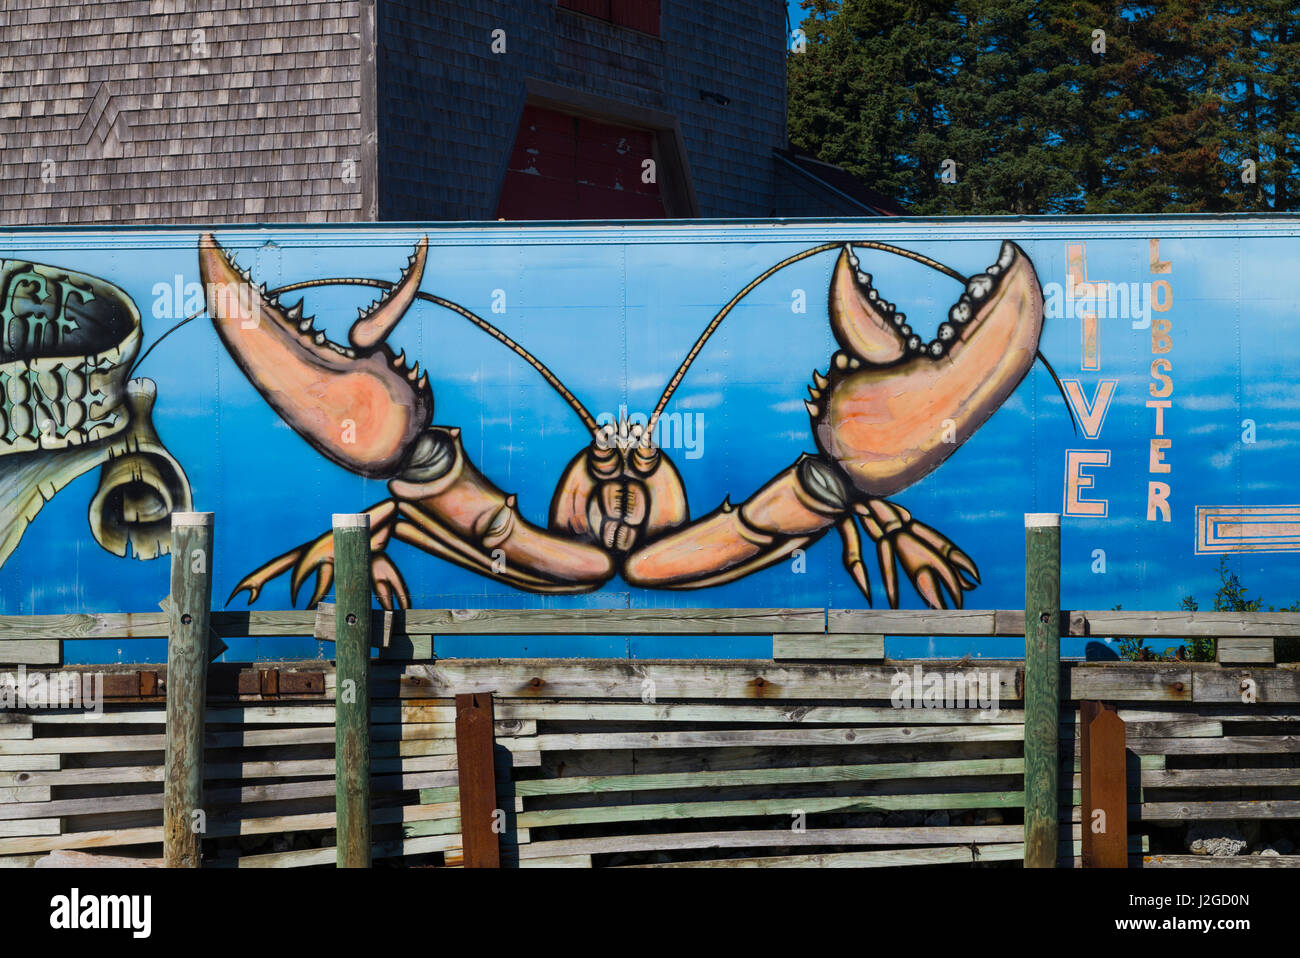 USA, Maine, Port Clyde, lobster mural - Stock Image